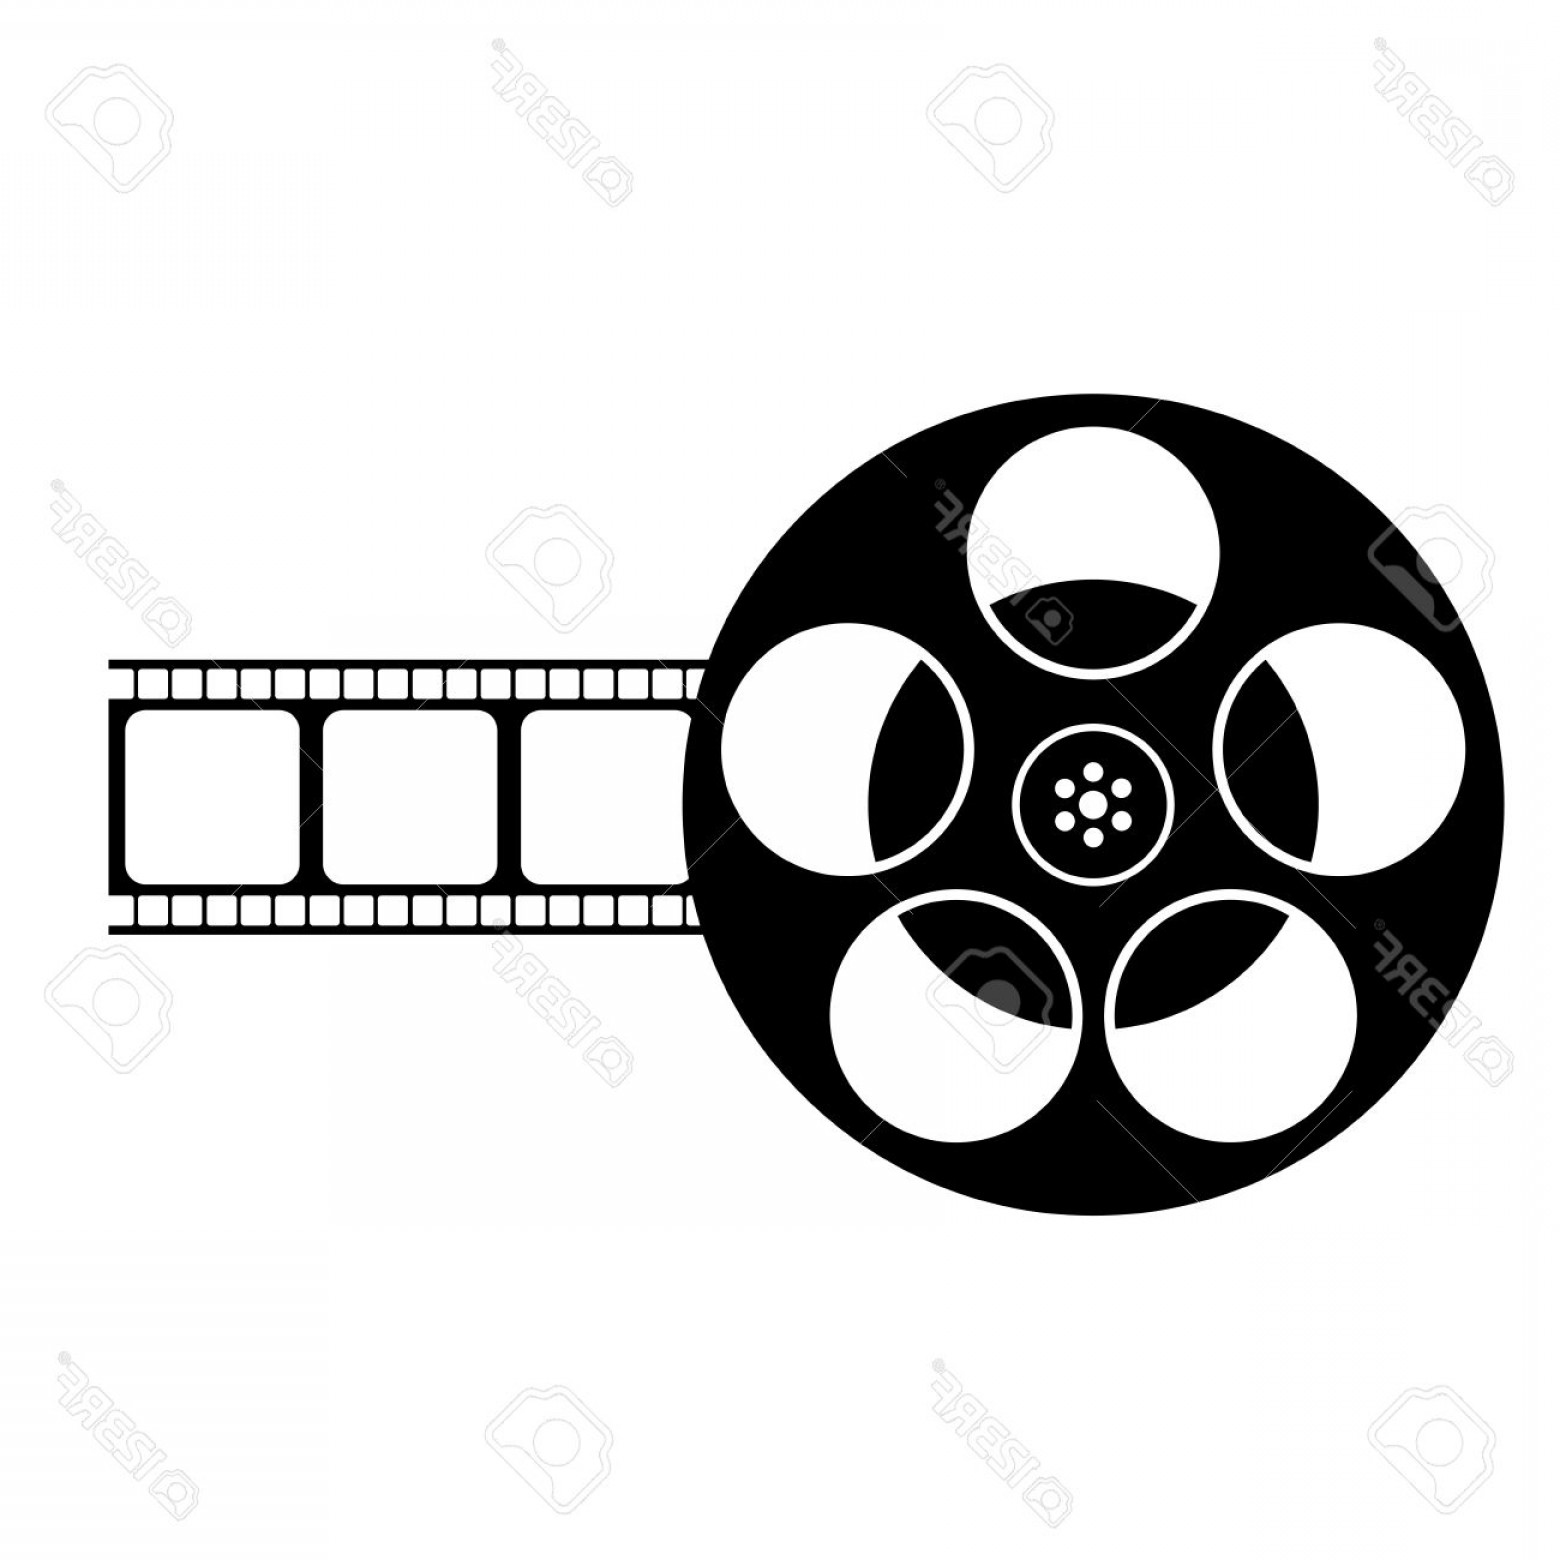 Film reel clipart black and white svg transparent library Film Reel Clipart Black And White | SOIDERGI svg transparent library